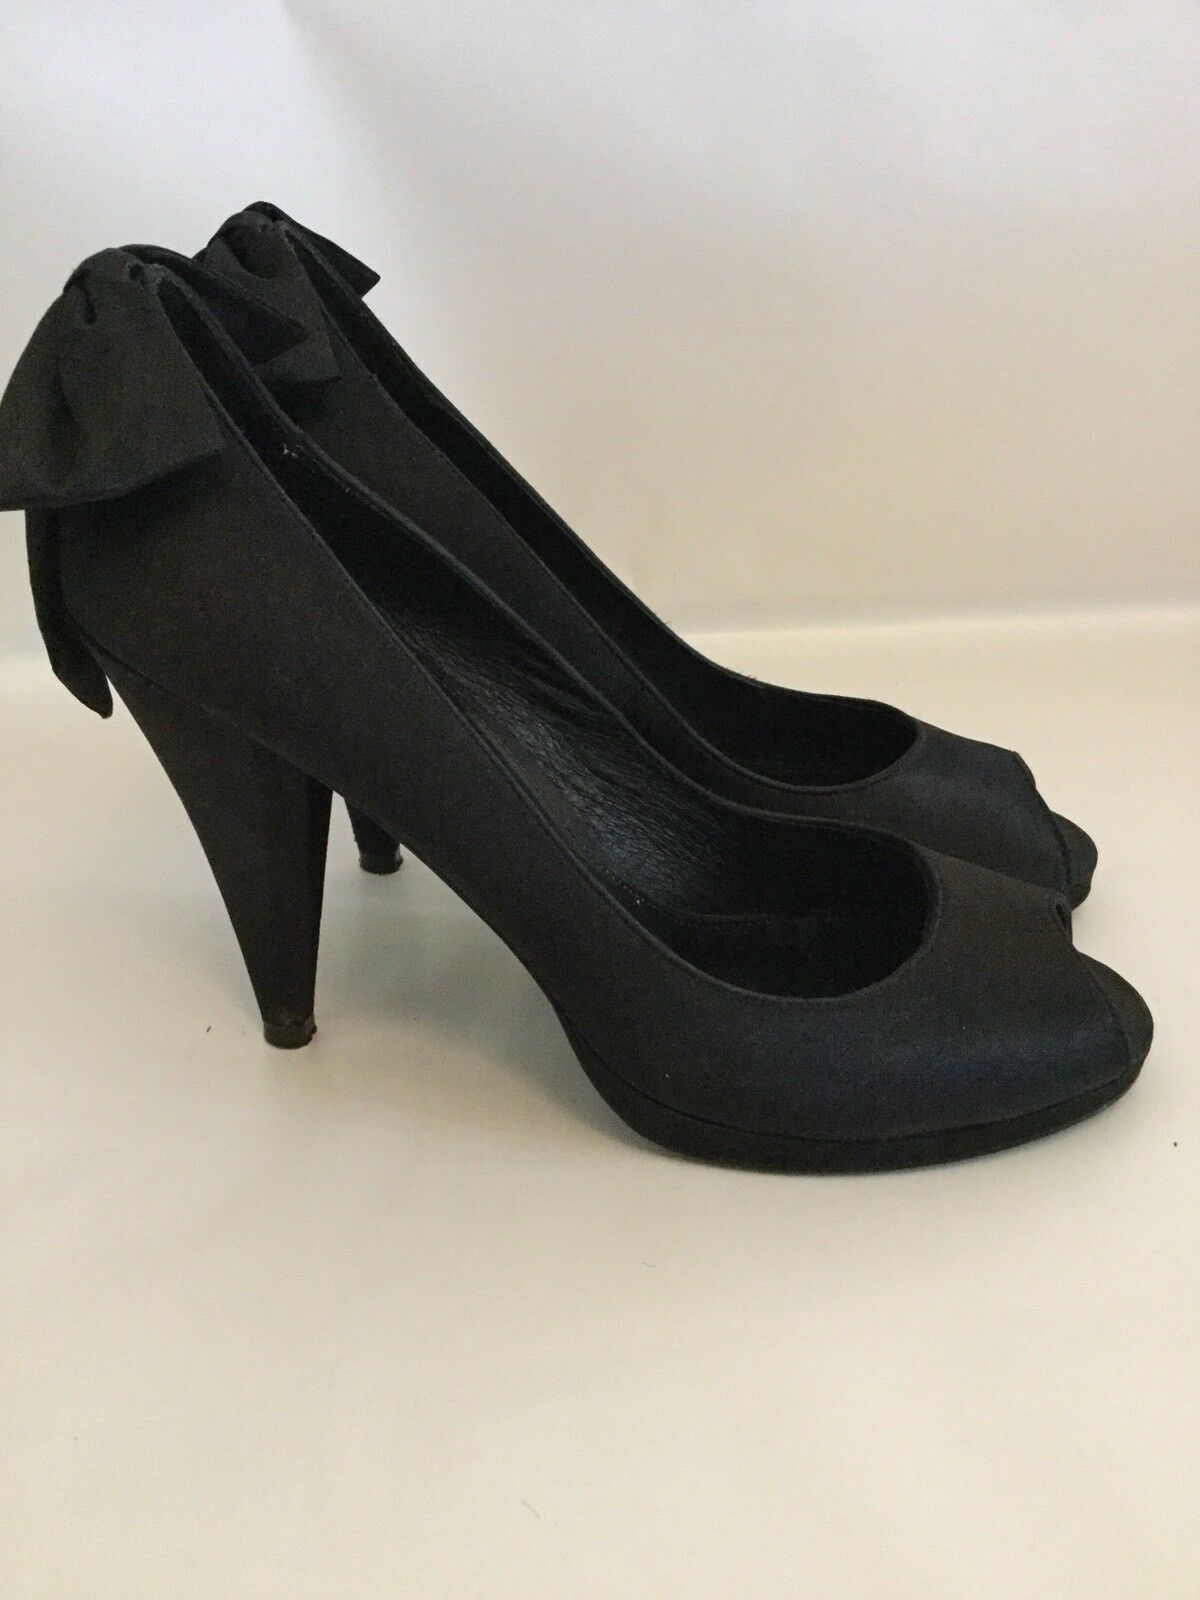 Mollini Ladies Tia Black Satin High Heels Size 40 EUC RRP $128